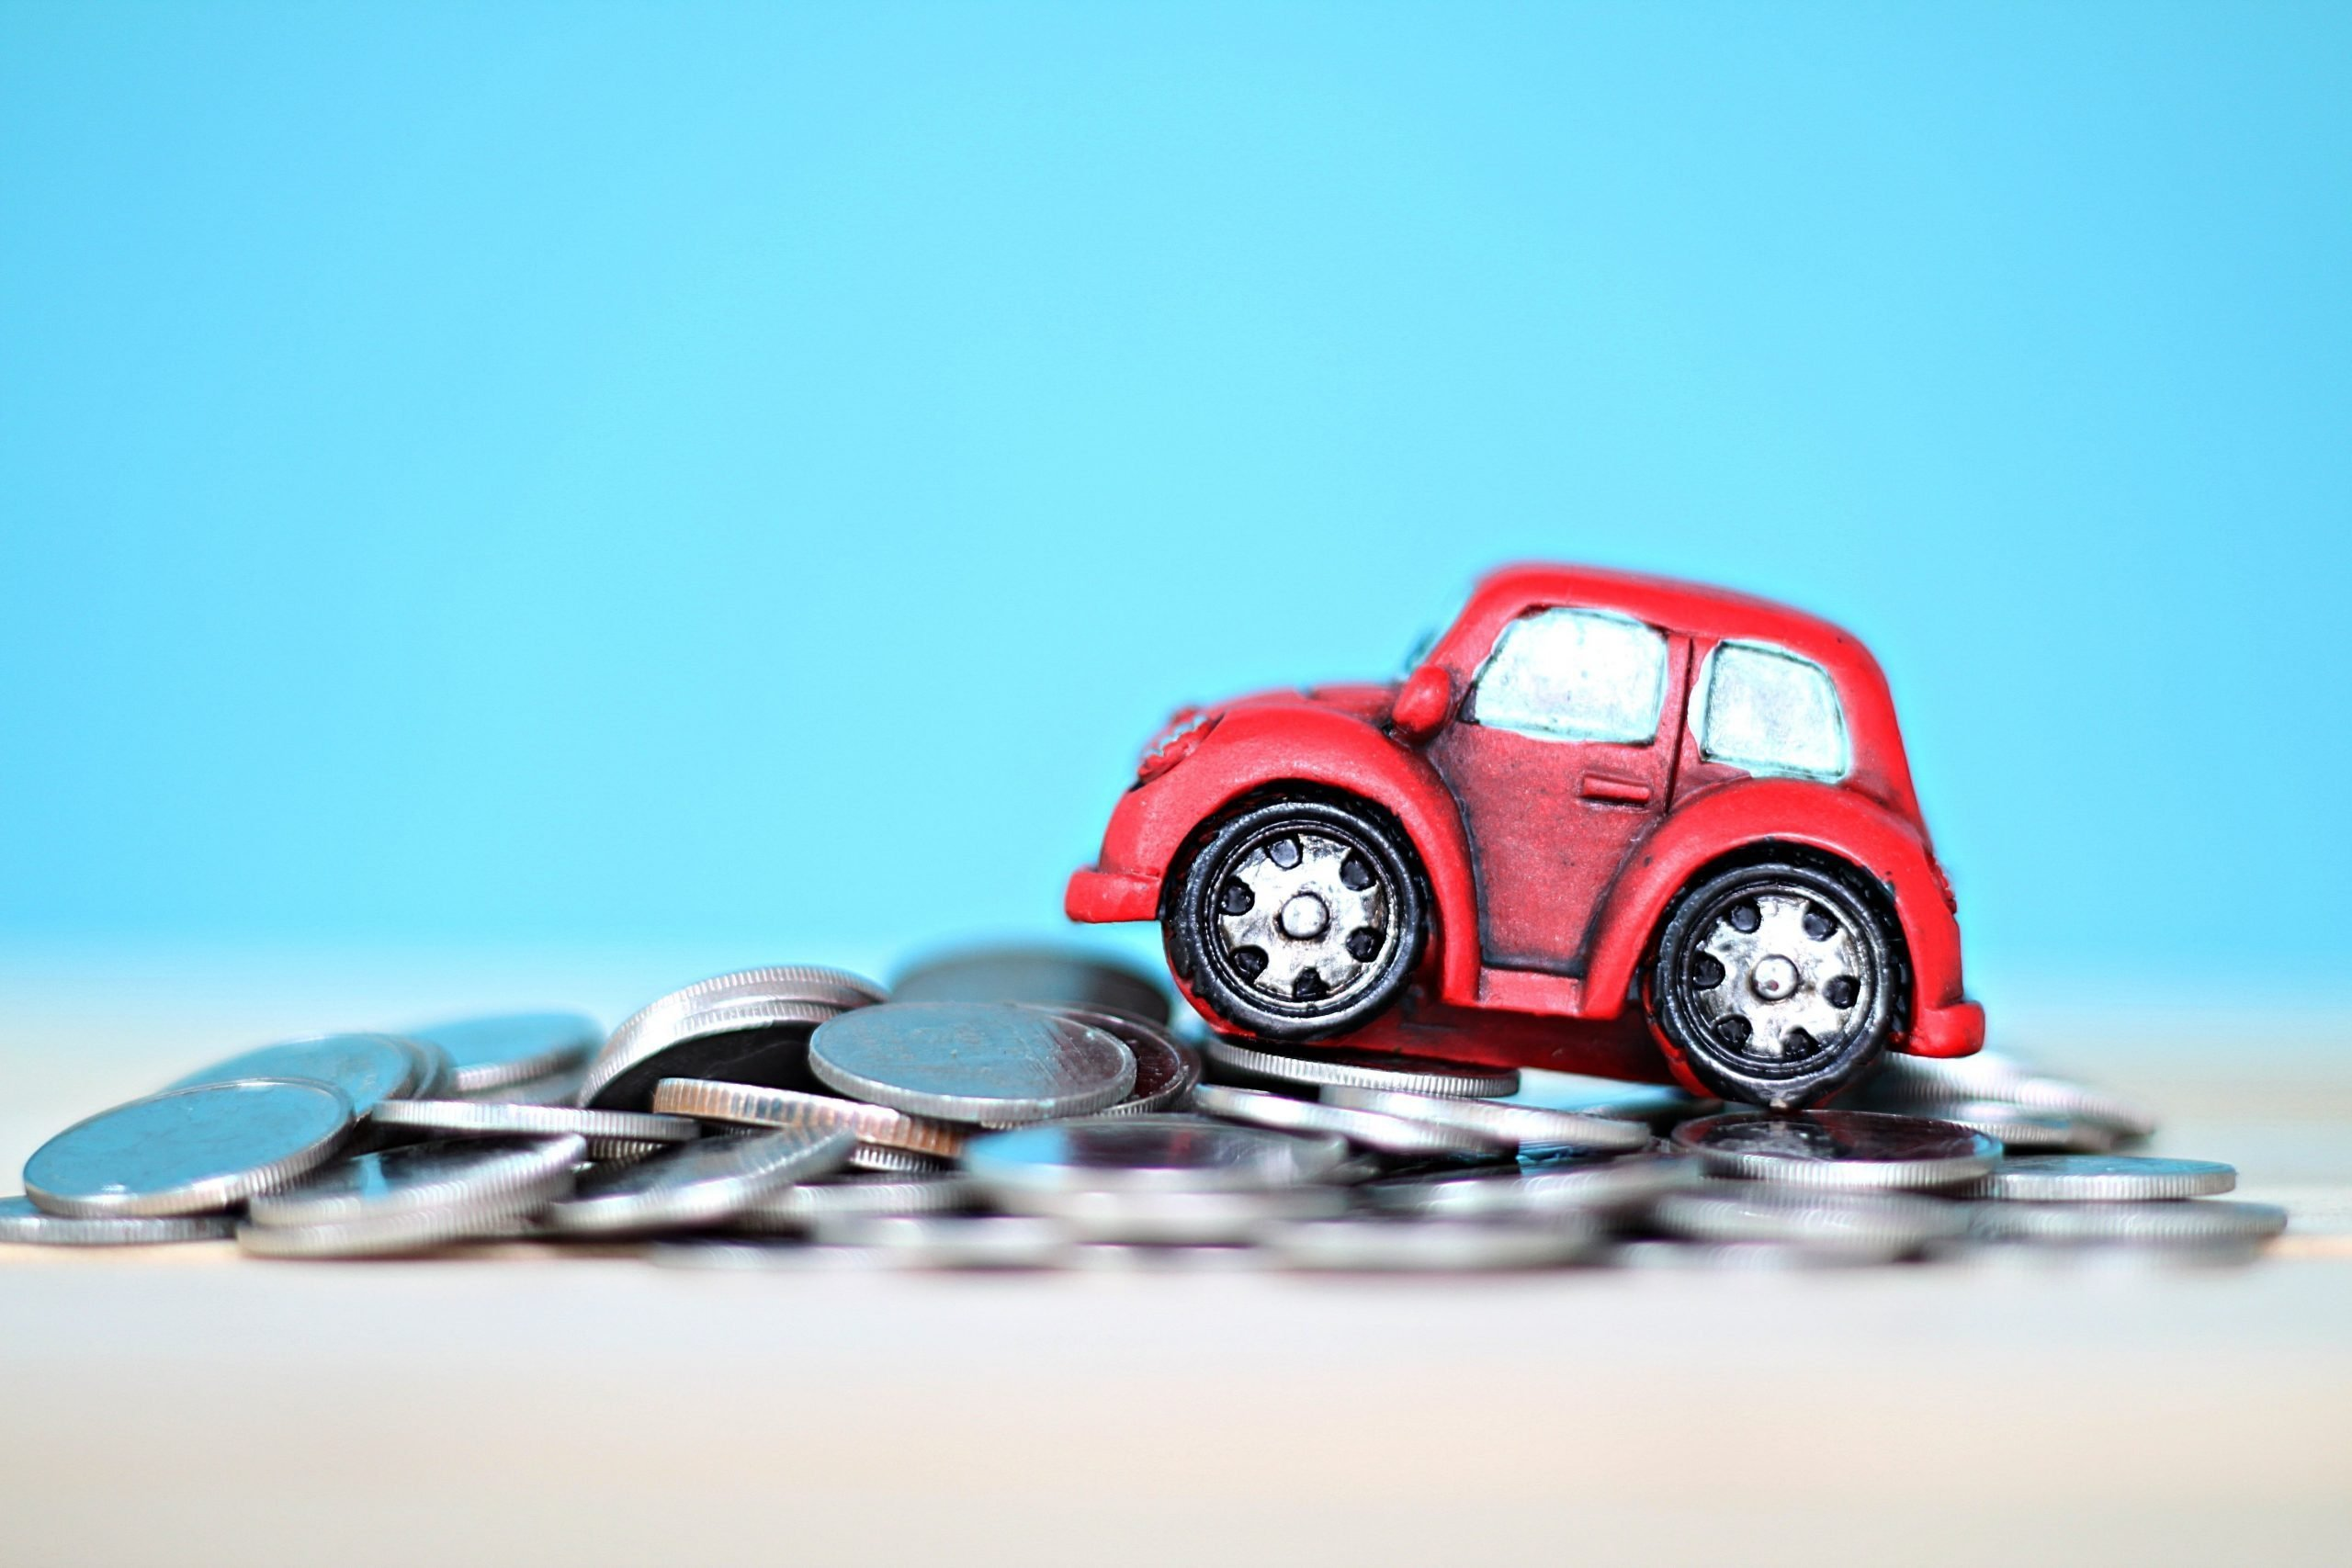 Miniature car model and coins on desk table